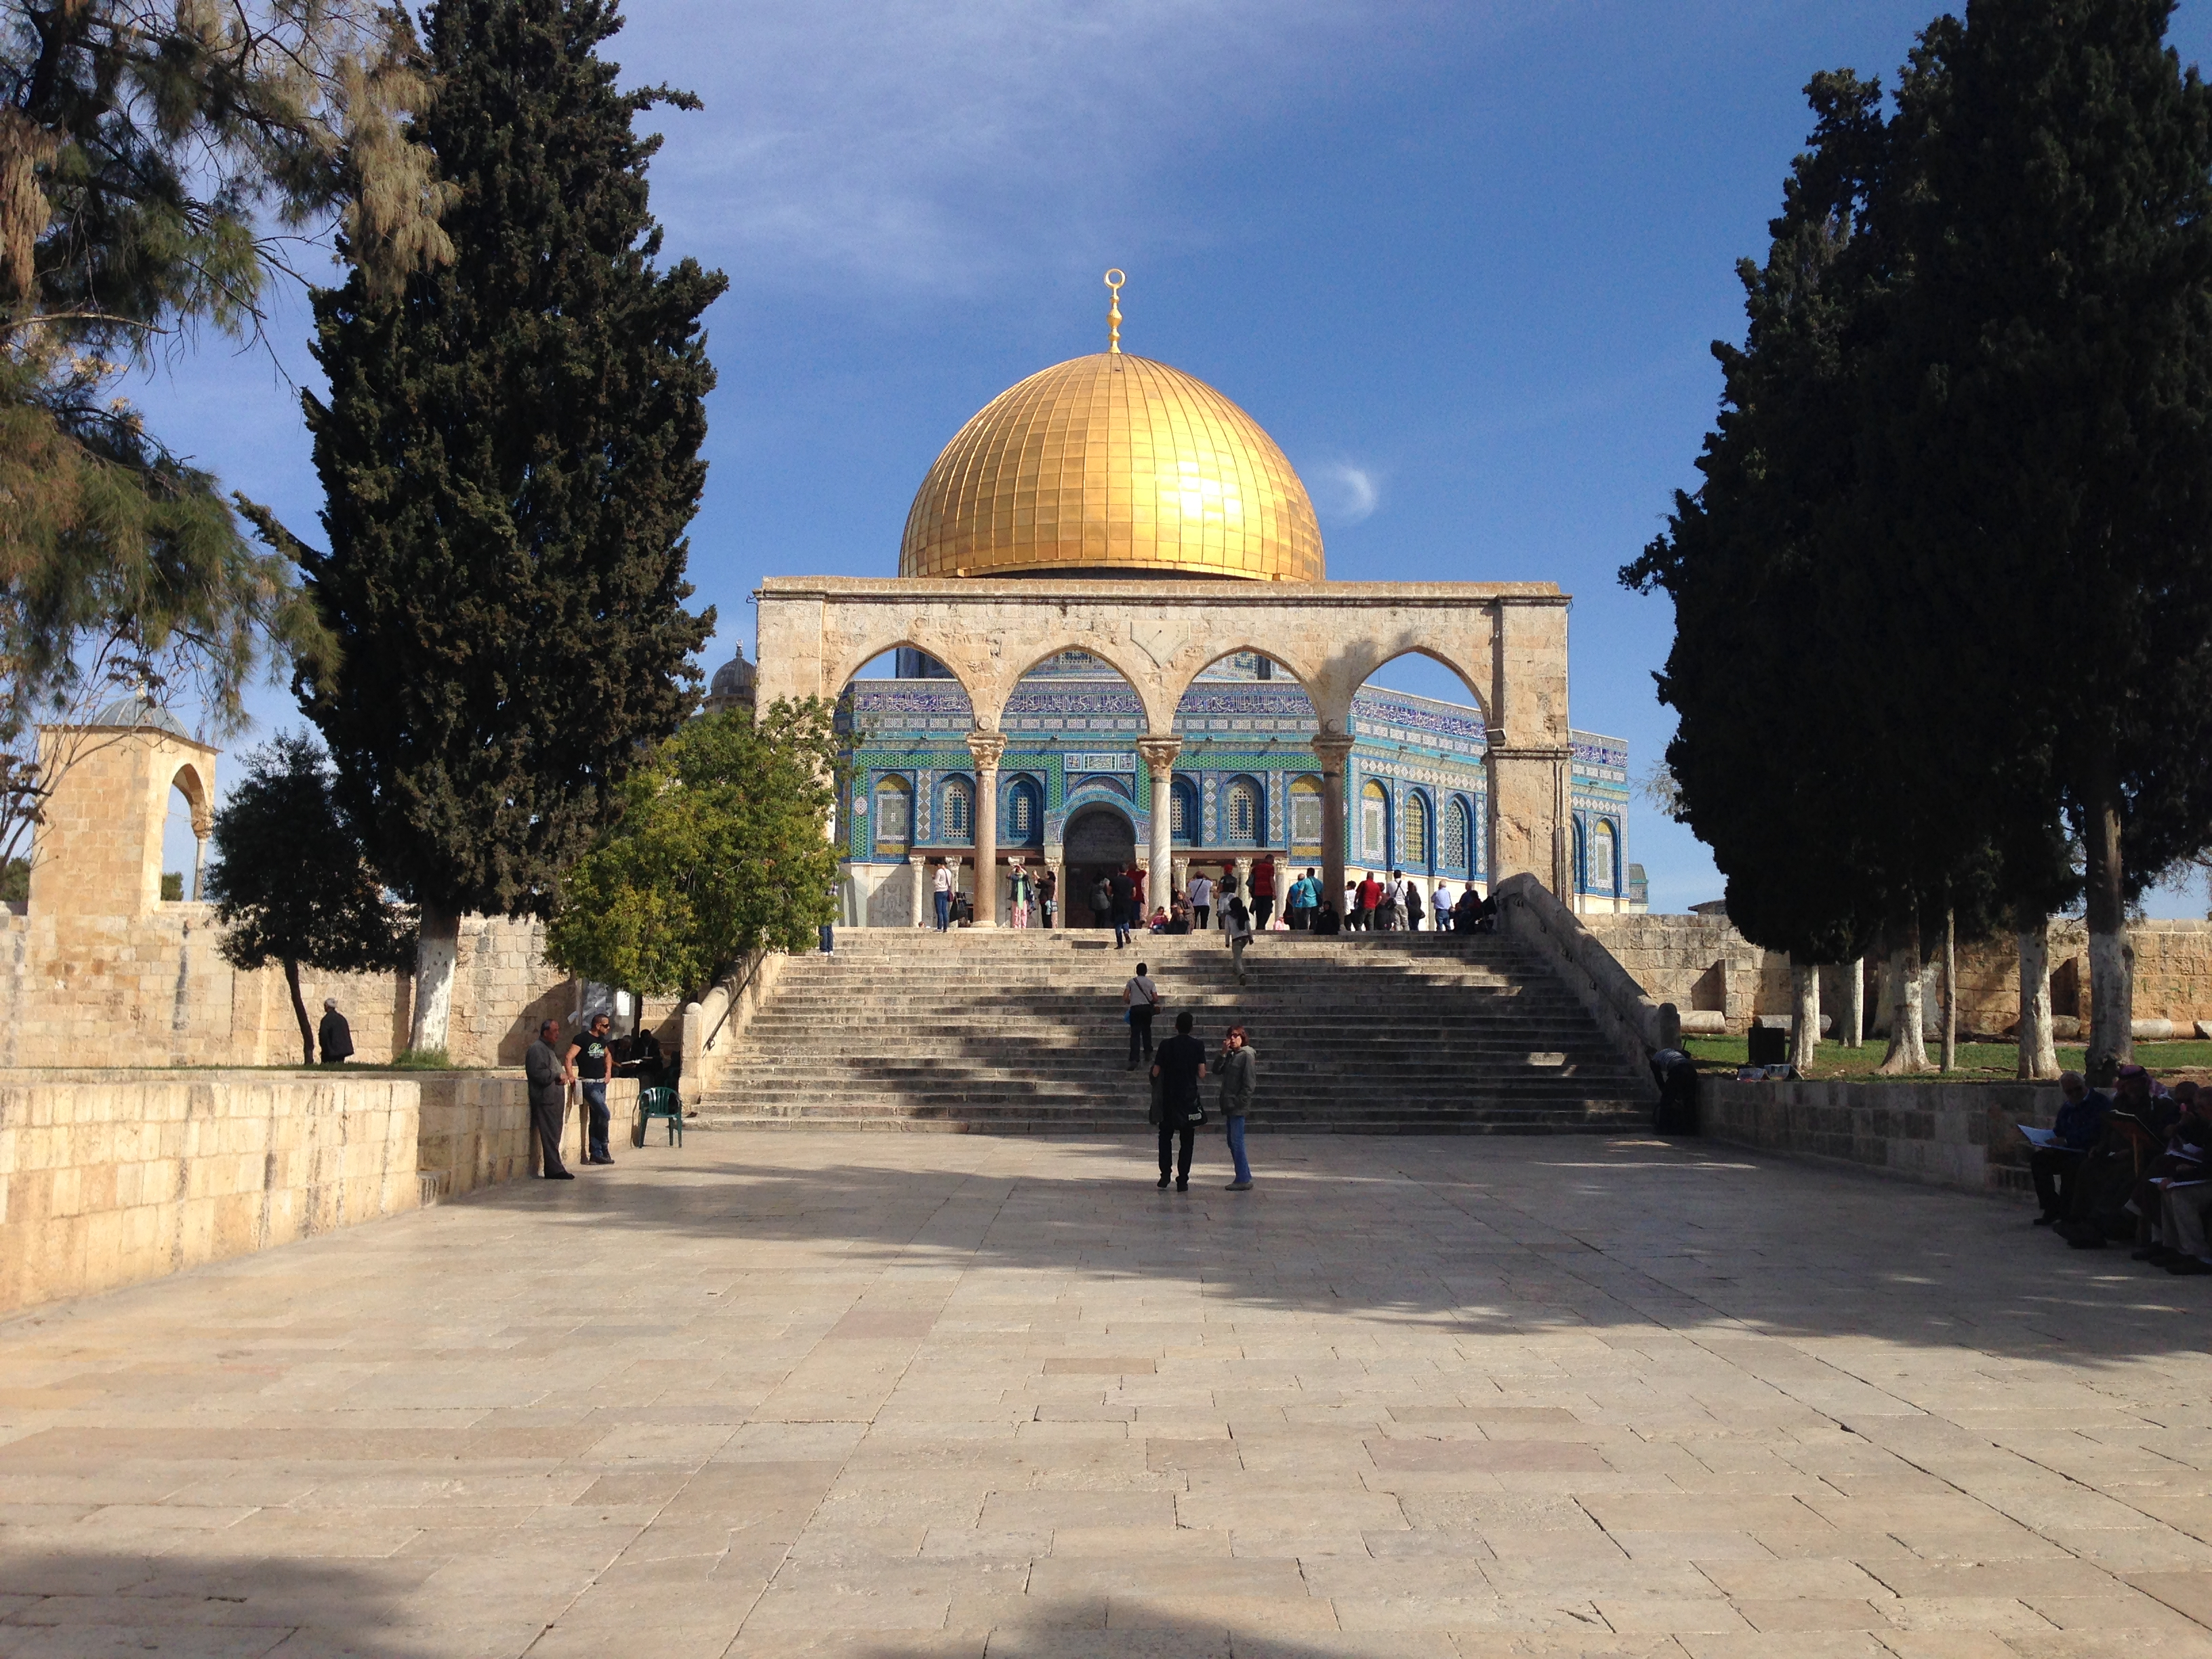 The Dome of the Rock is a Moslem mosque that sits on the historic site of the Jewish temple in Jerusalem